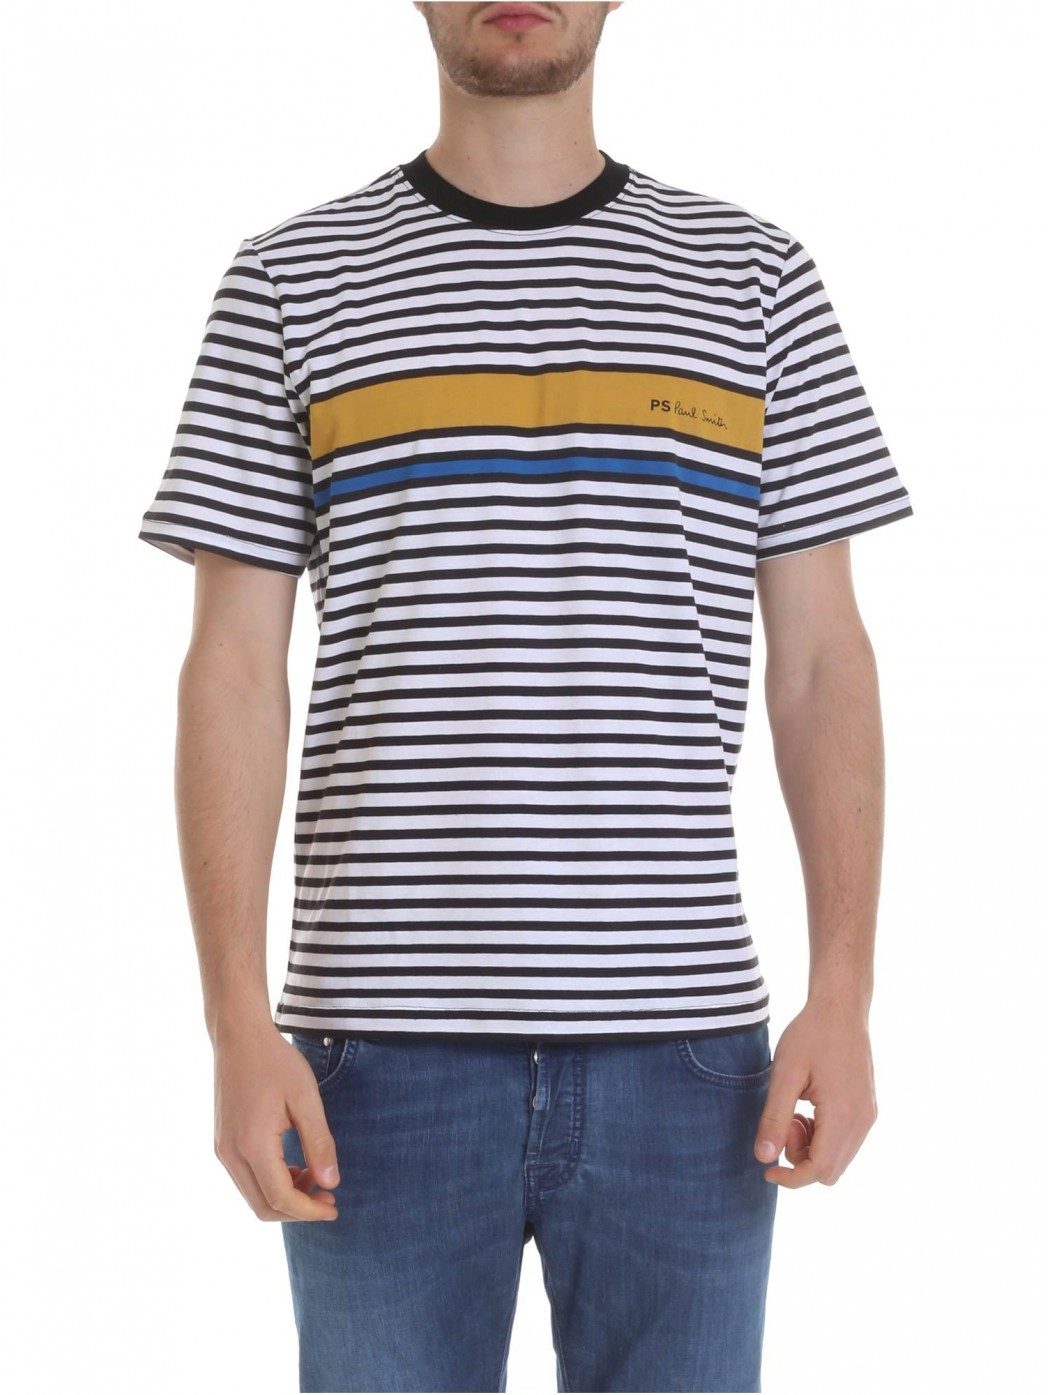 PAUL SMITH M2R 011R 14 T-SHIRT